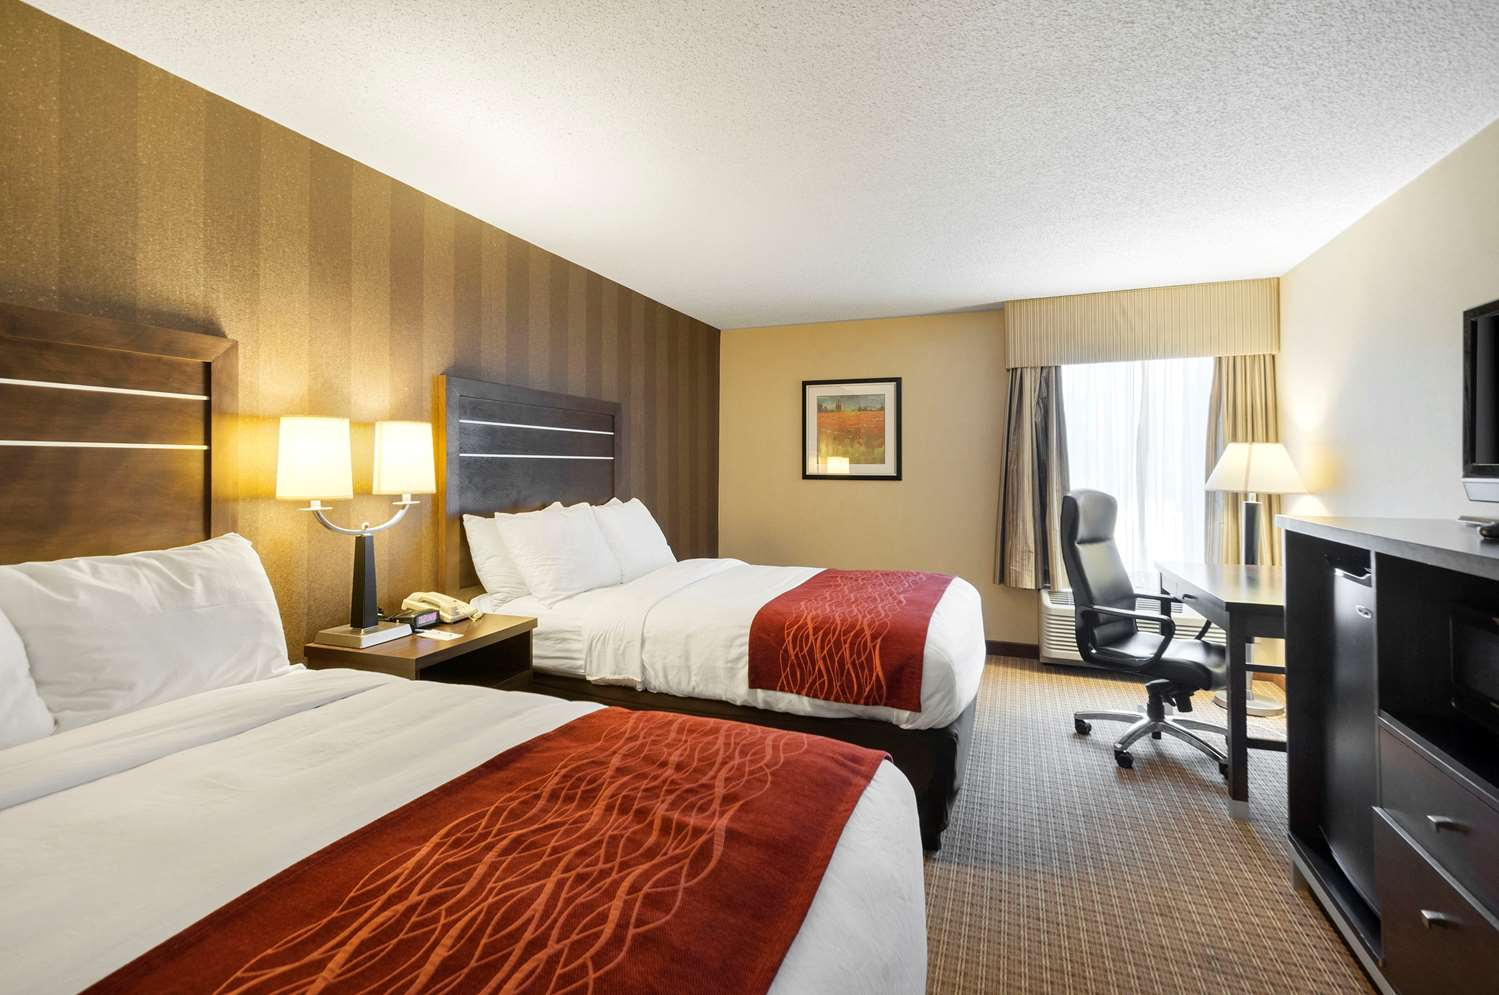 Room - Comfort Inn & Suites Edgewood